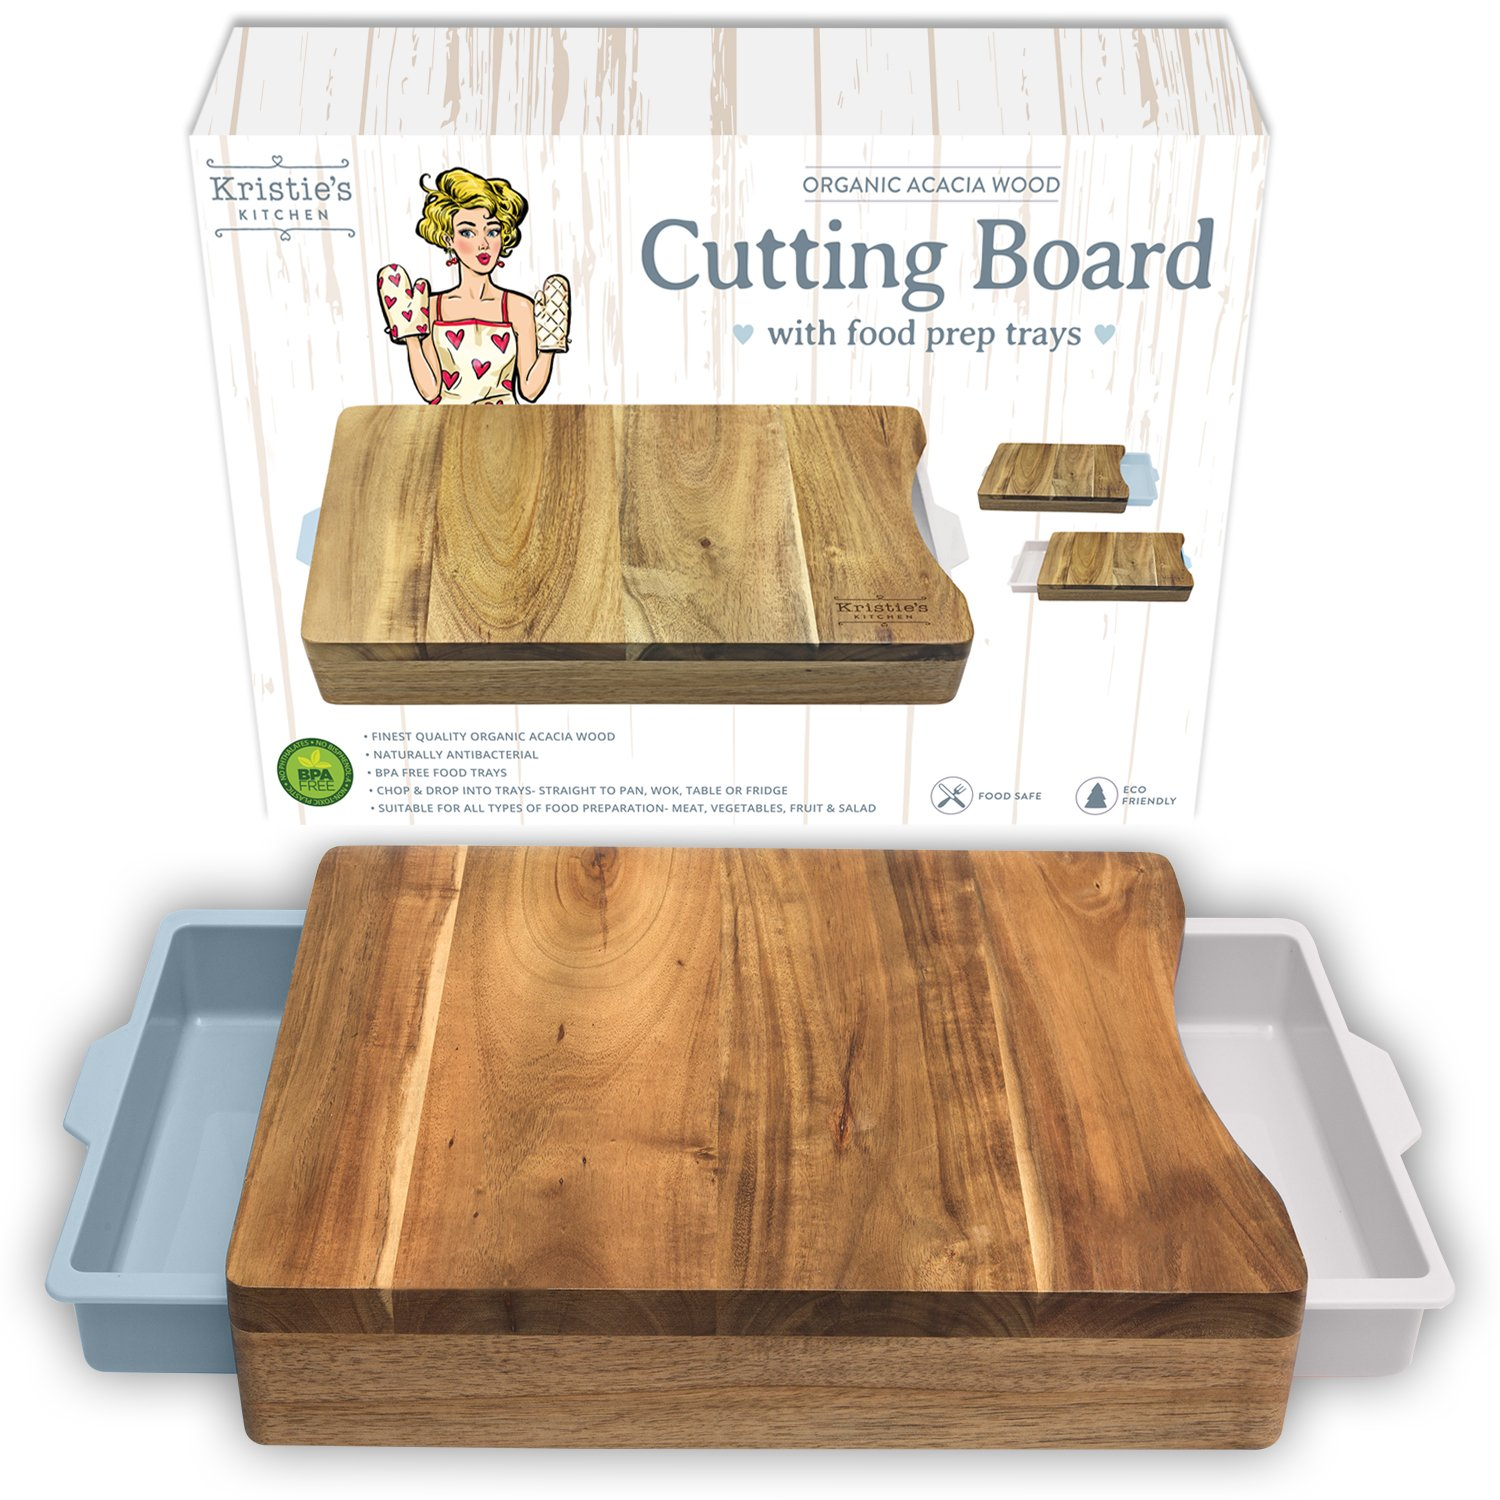 Cutting Board with Trays - Organic Acacia Wood Butcher Block with Containers White Pale Blue Iconic Products USA Chopping-Board-2017